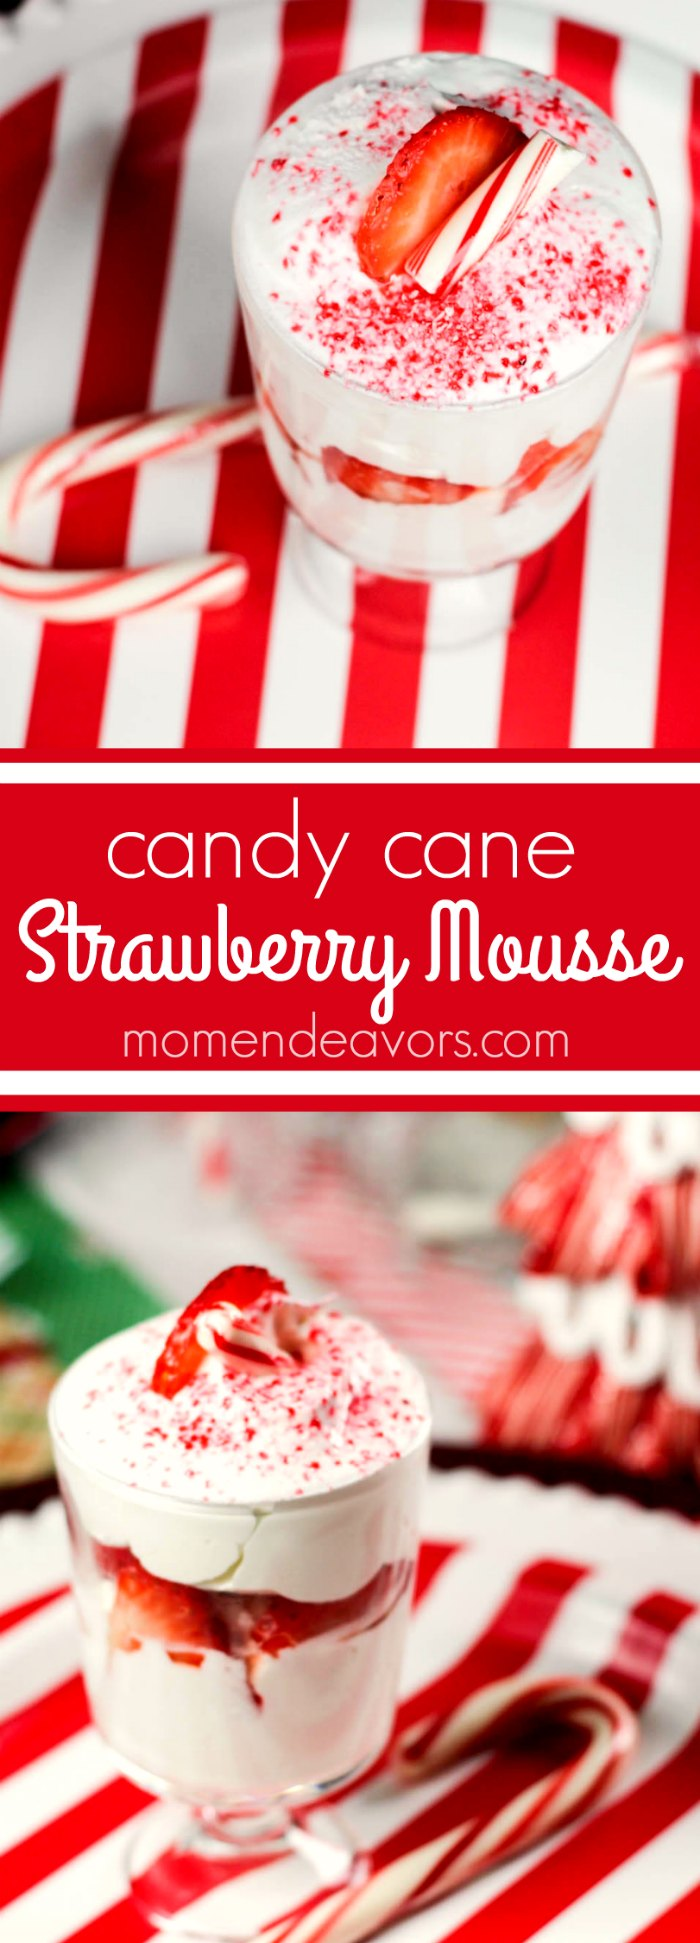 Candy Cane Strawberry Mousse